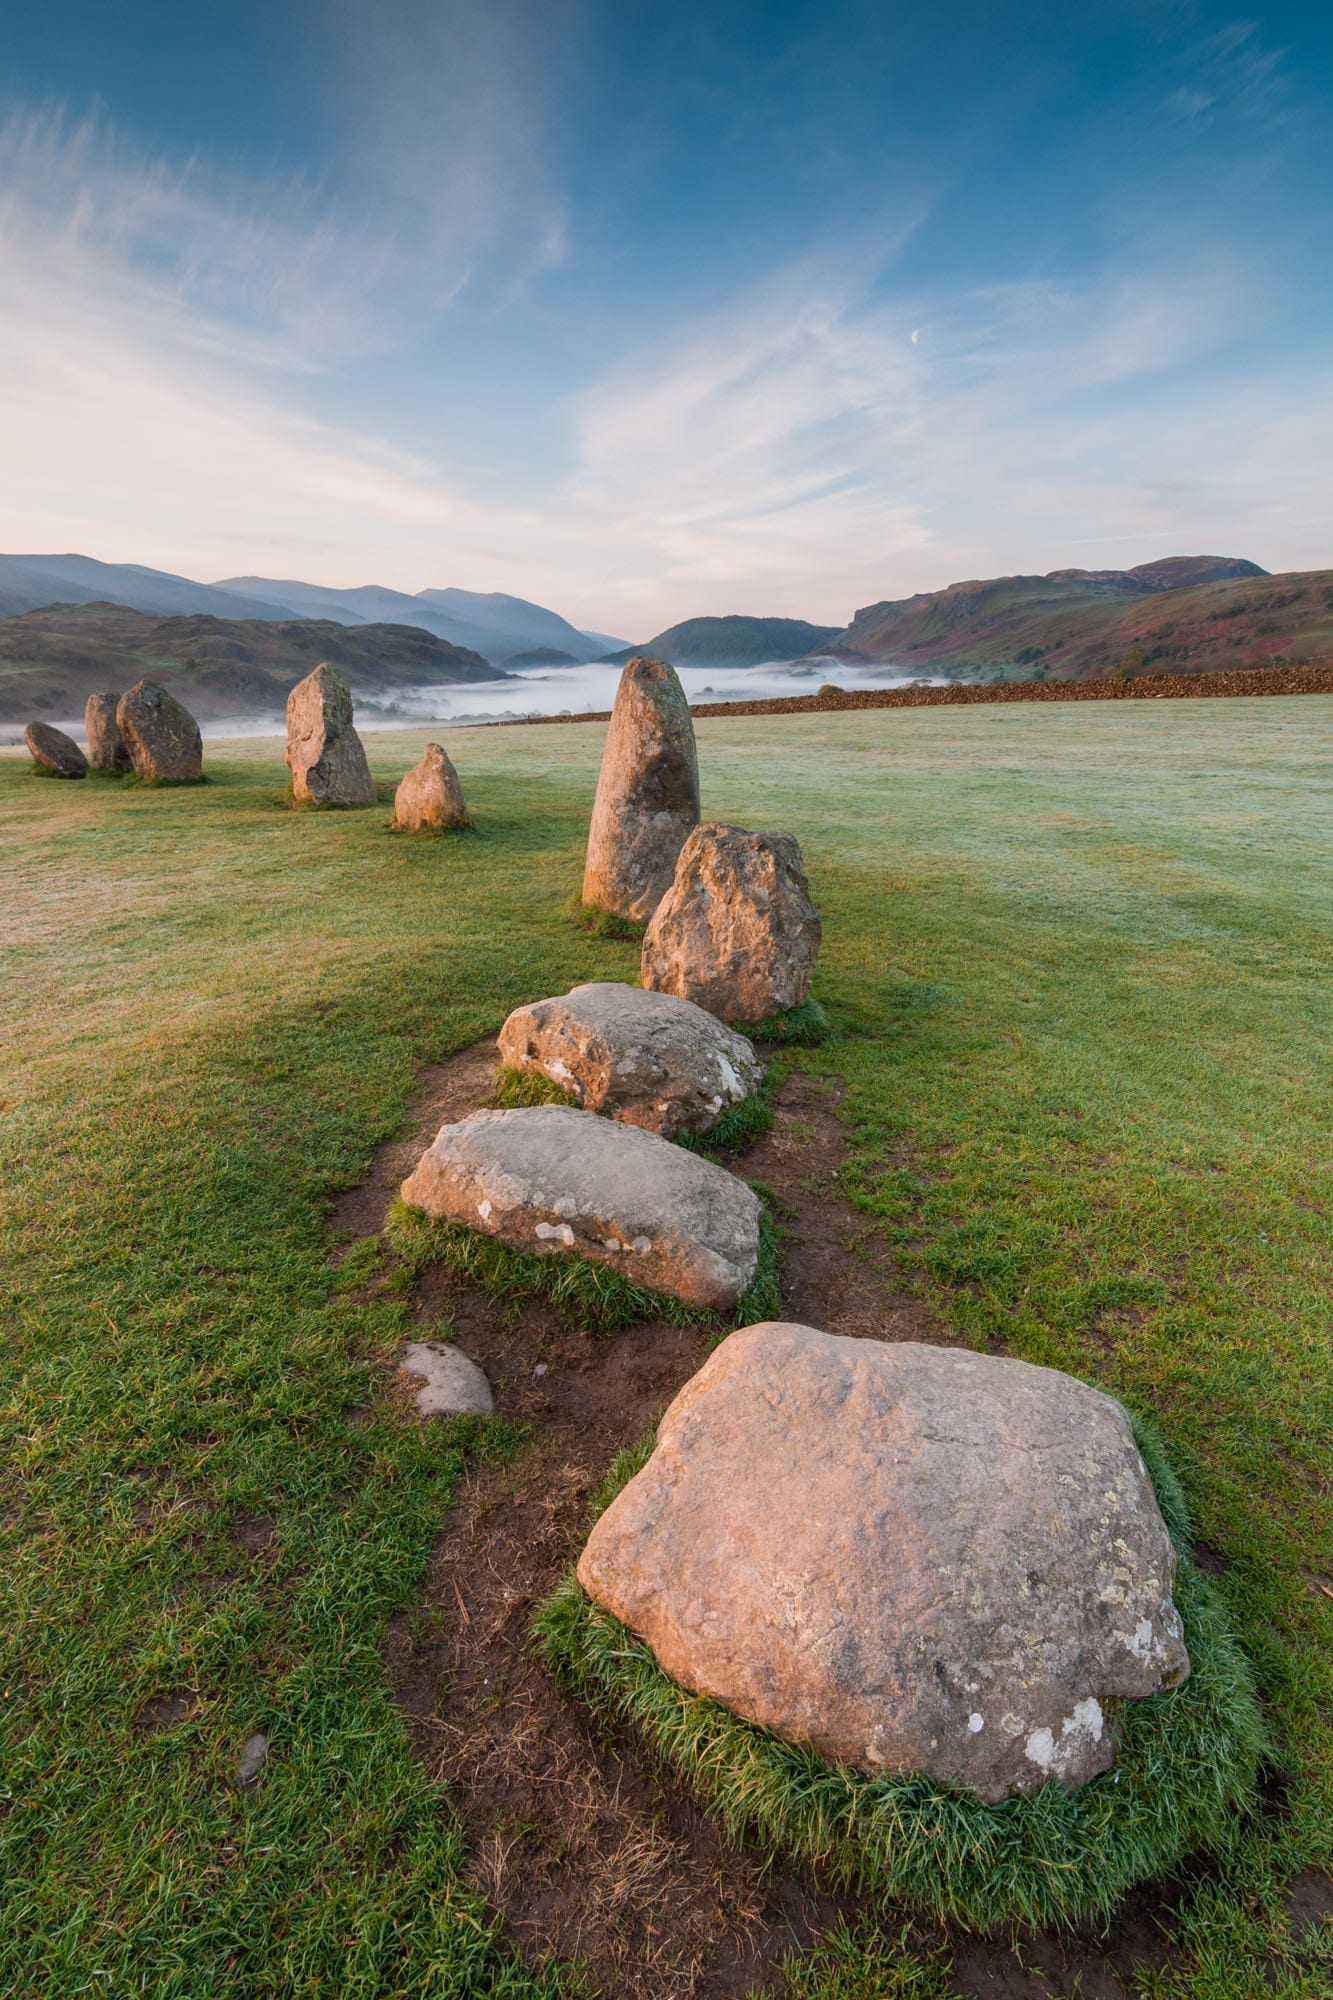 Castlerigg Stone Circle Sunrise Mist - Lake District Photography